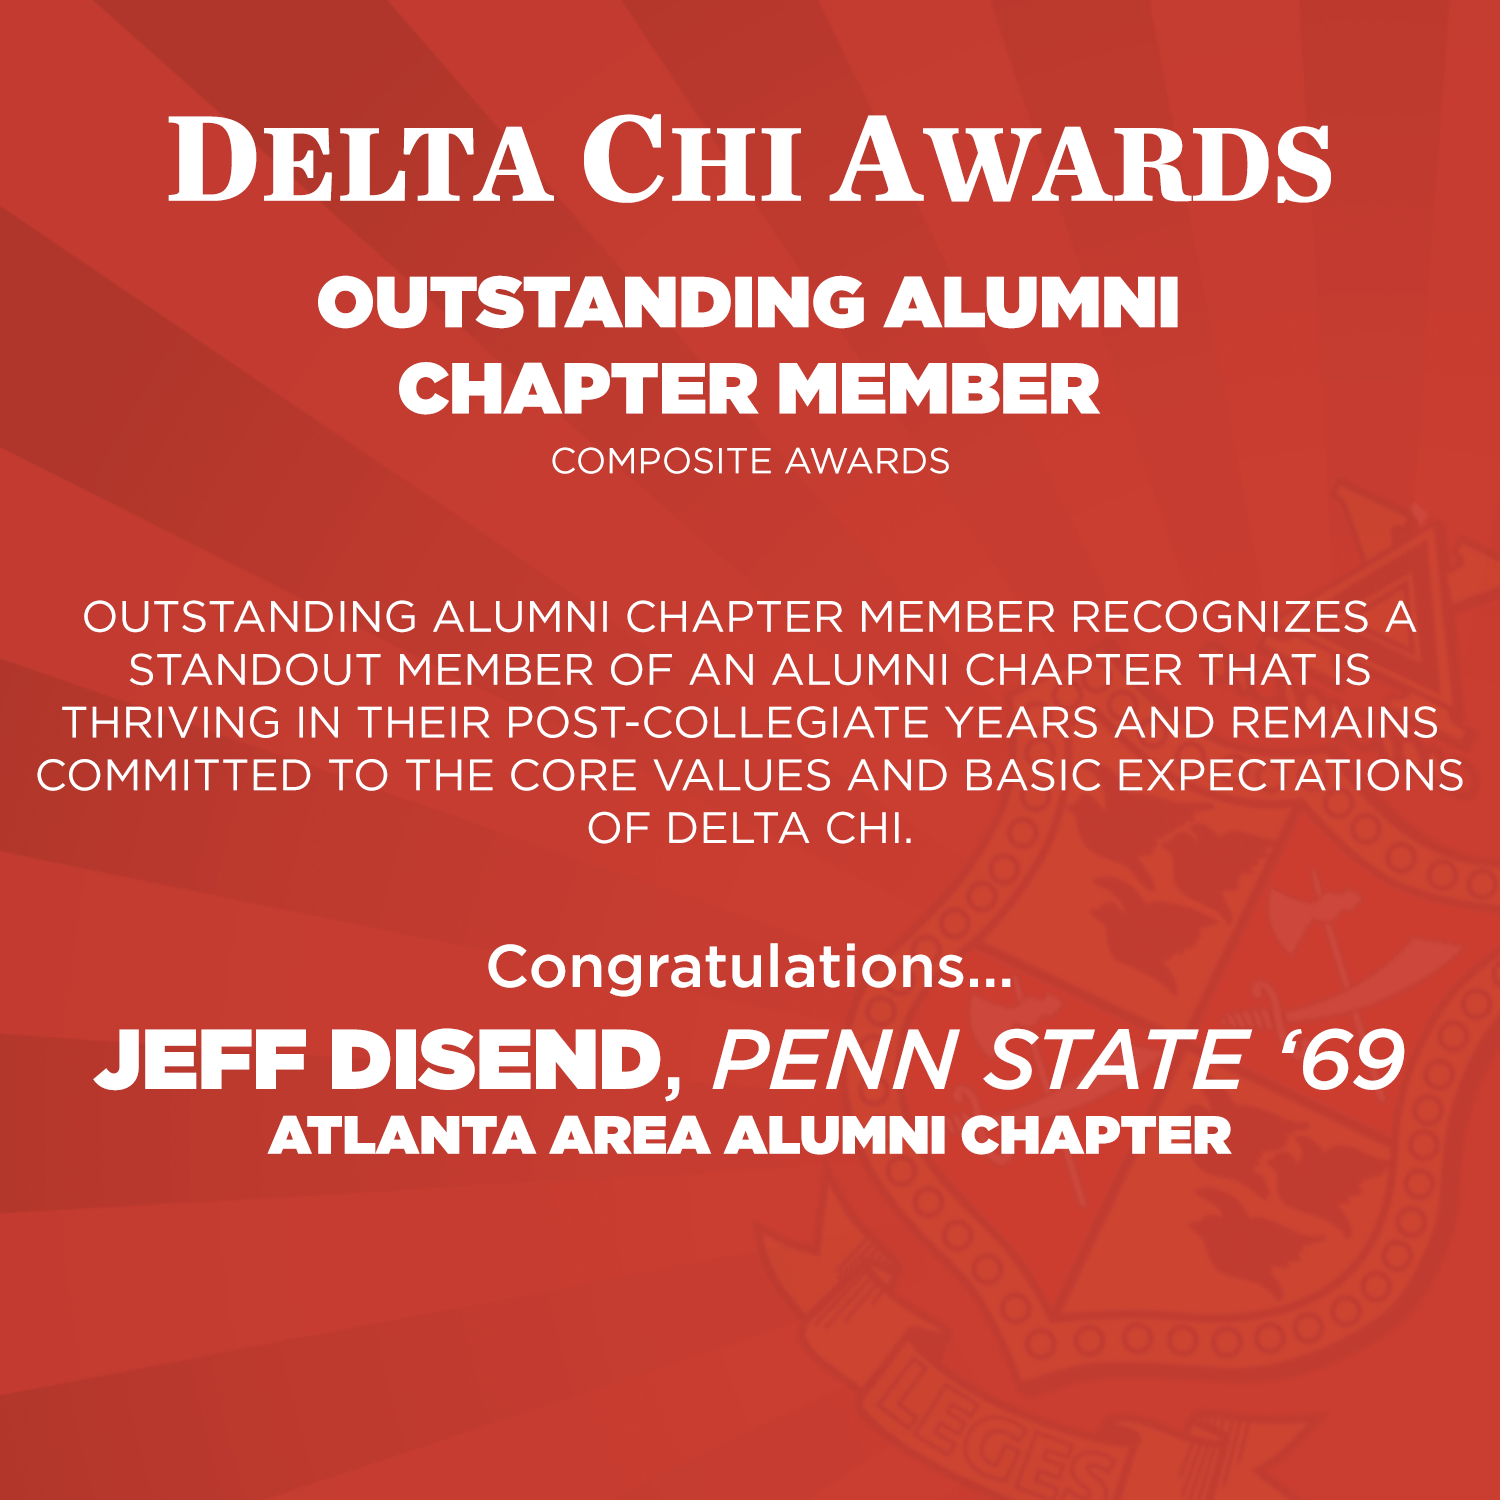 Outstanding Alumni Chapter Member